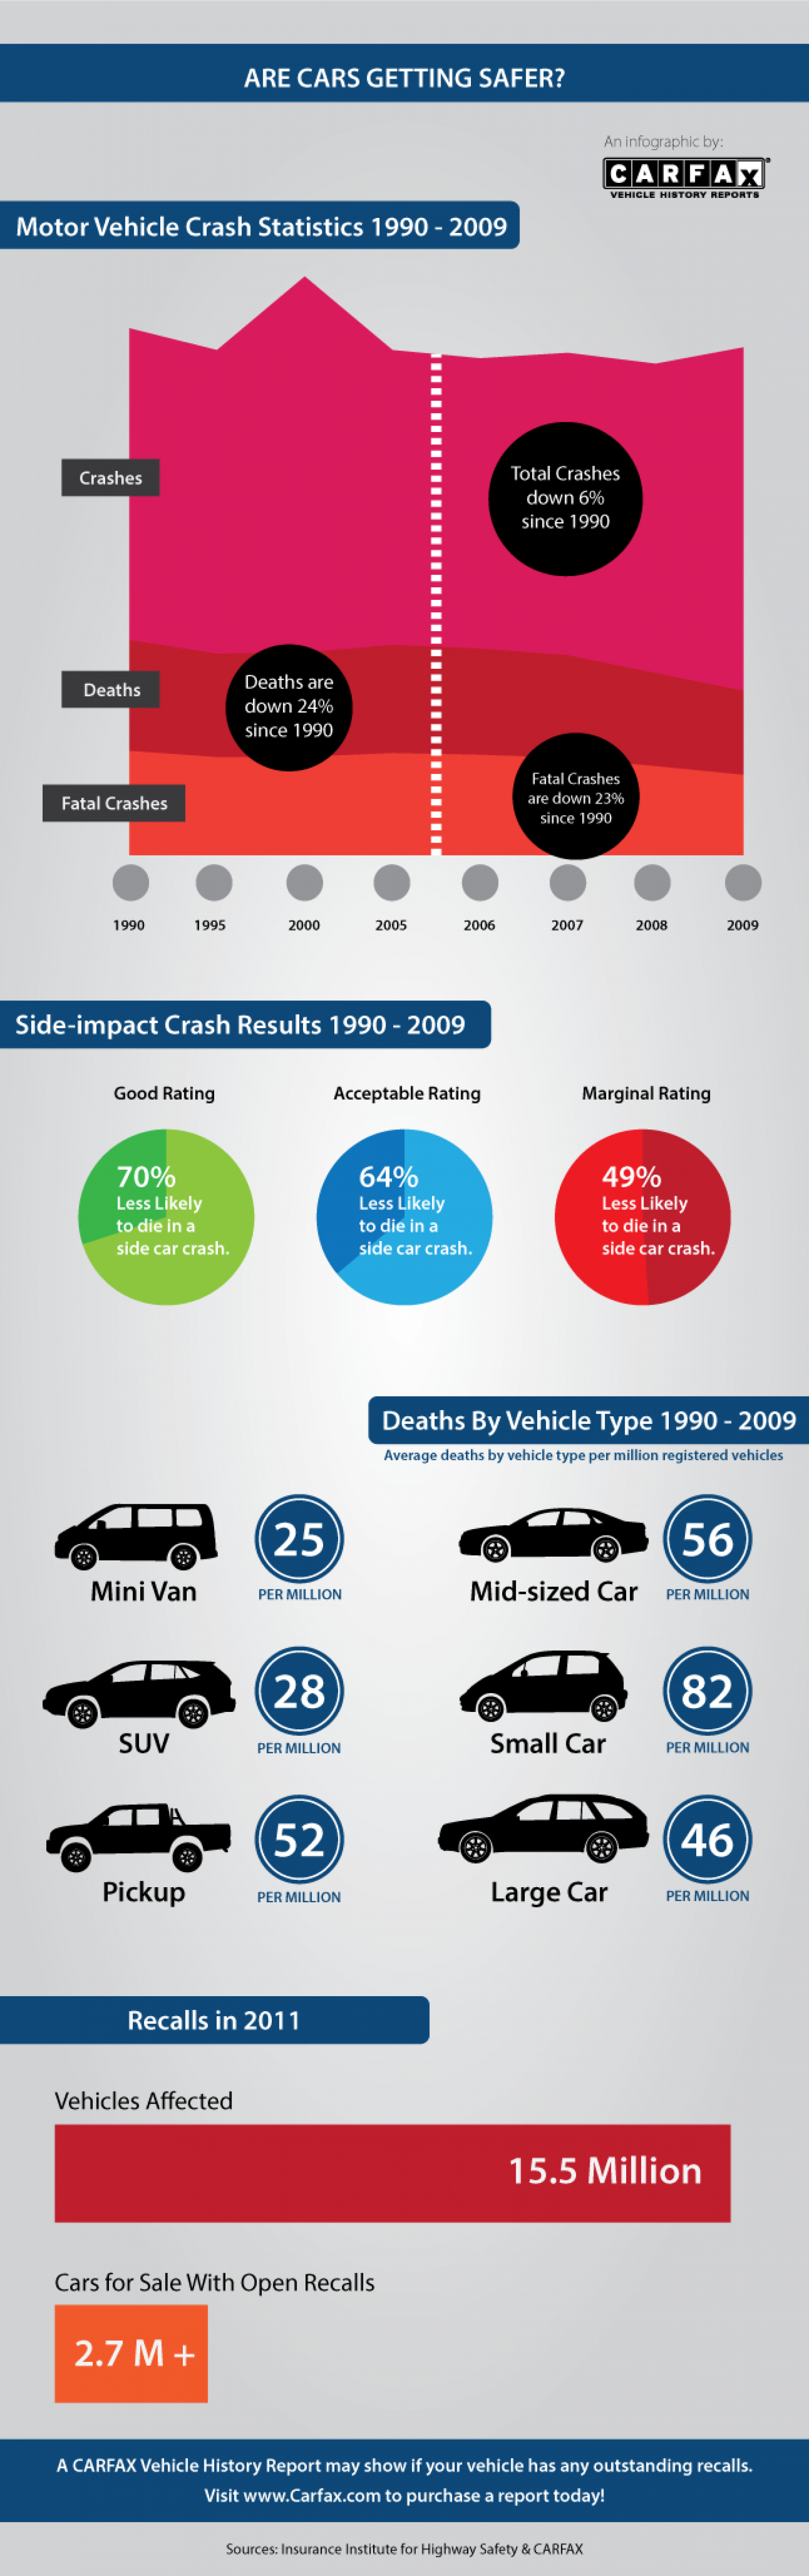 Are Cars Getting Safer? Infographic